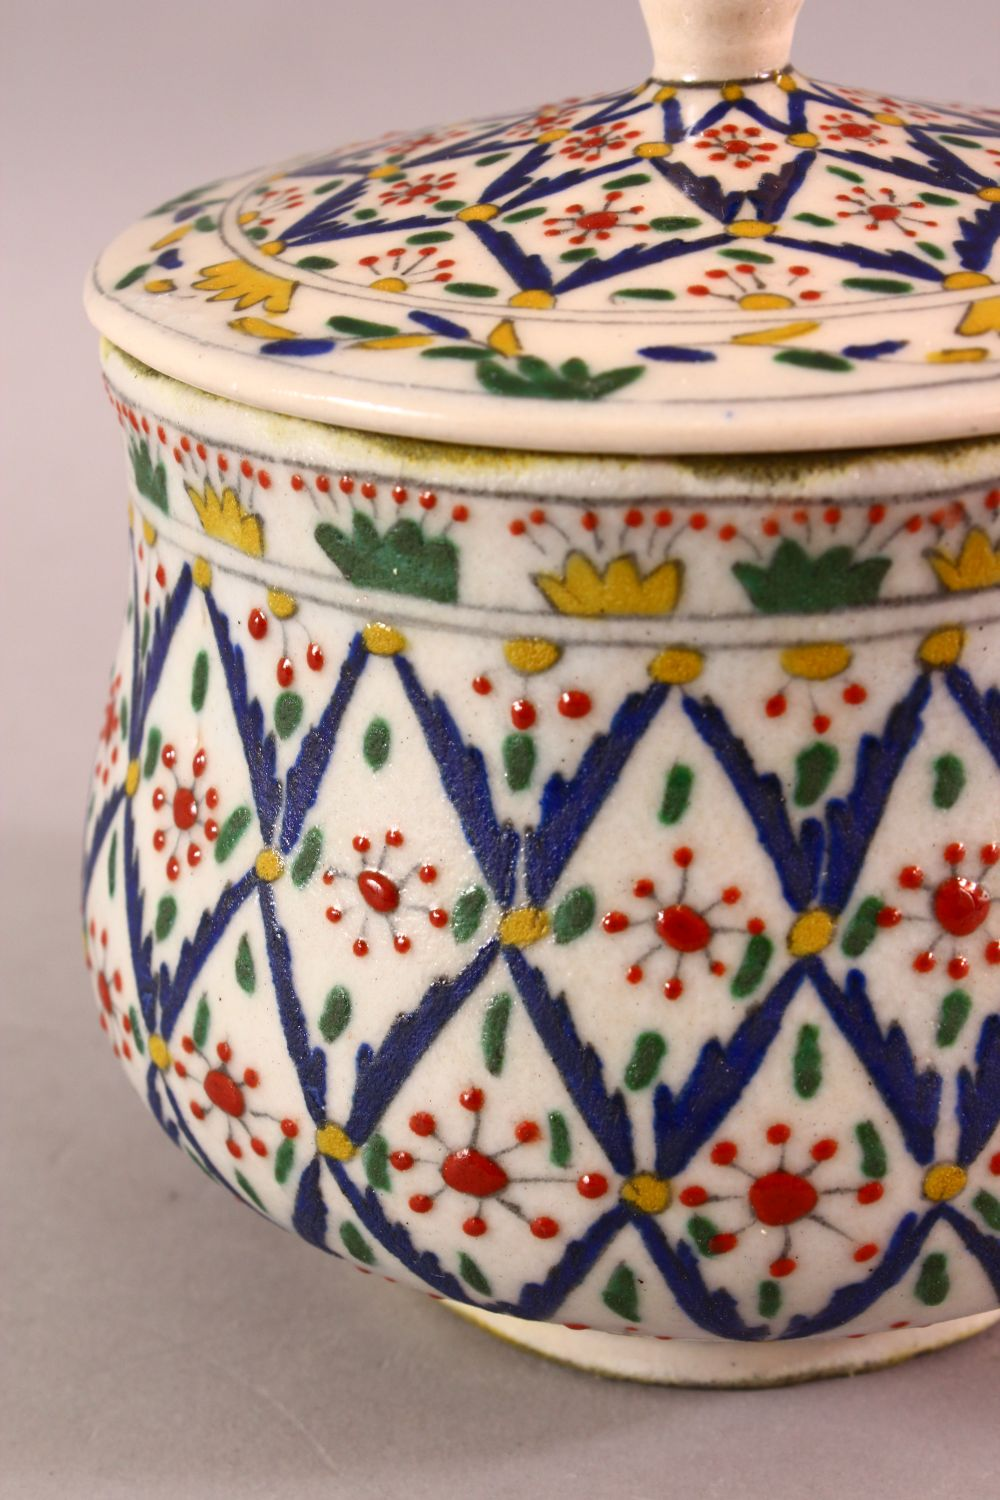 A TURKISH OTTOMAN DECORATED POTTERY BOWL & COVER, 13.5CM - Image 2 of 5